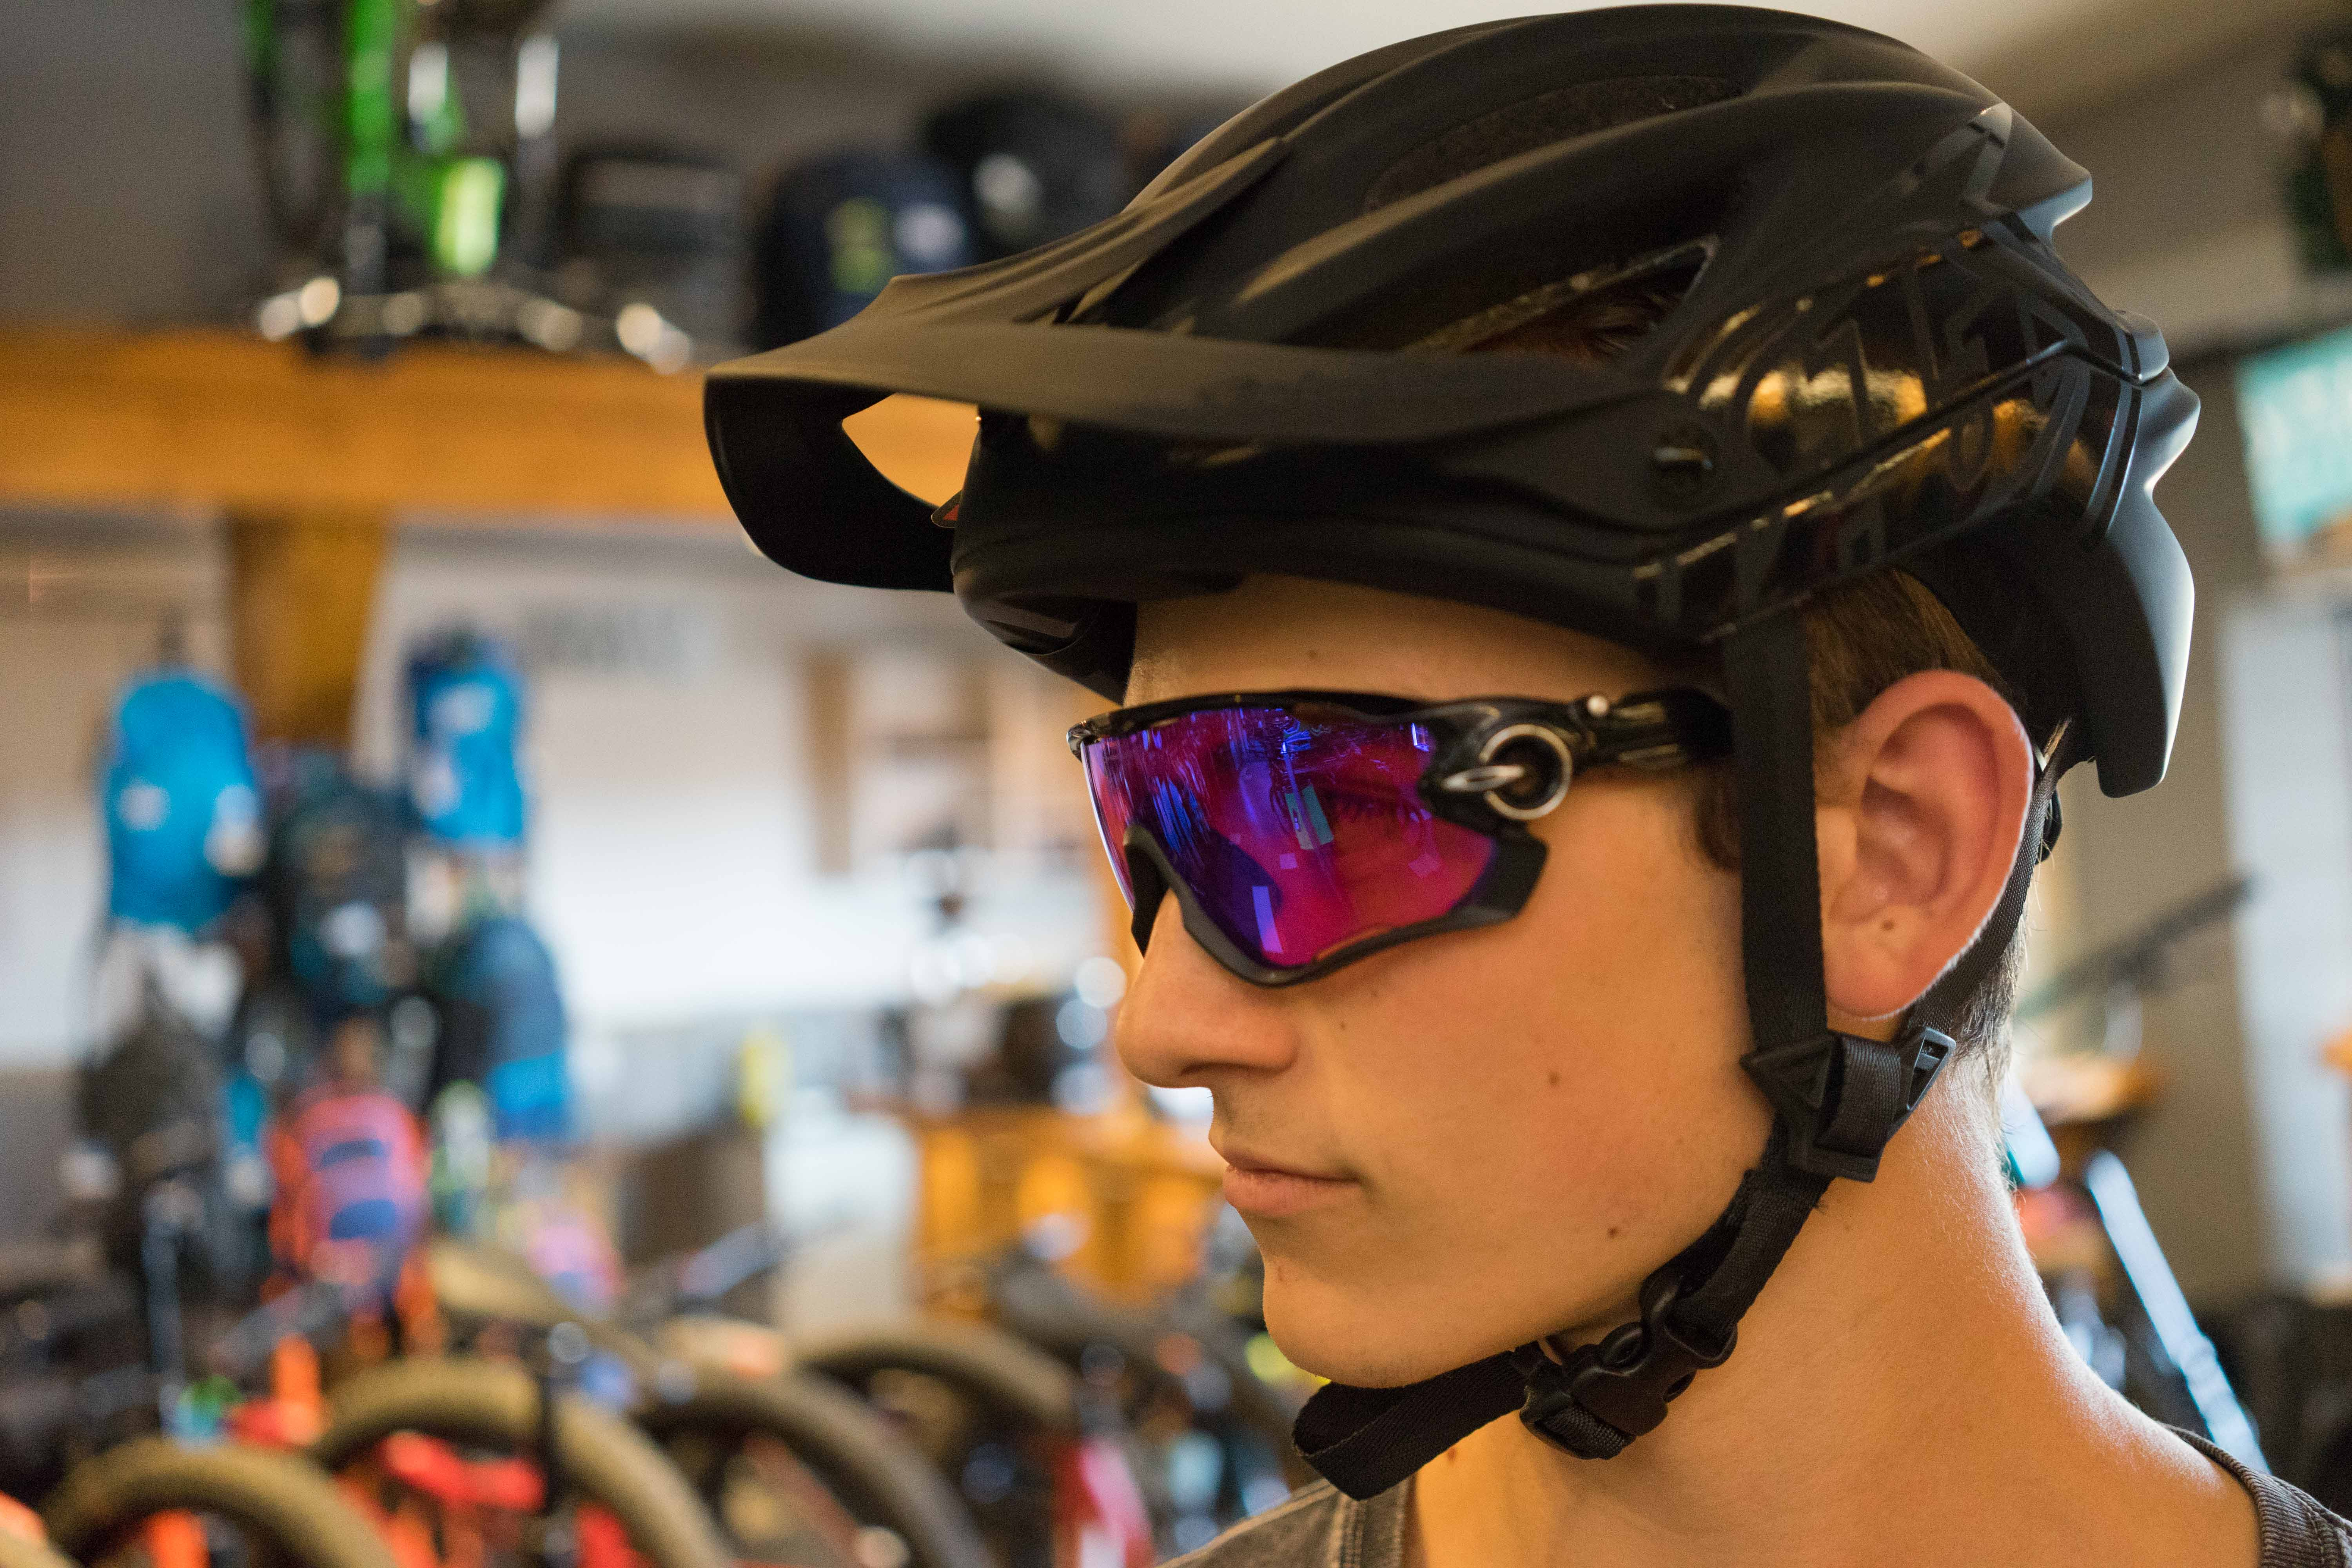 c8872a1ec0 Oakley Prizm System Jawbreaker Sunglasses Review - Do They Work